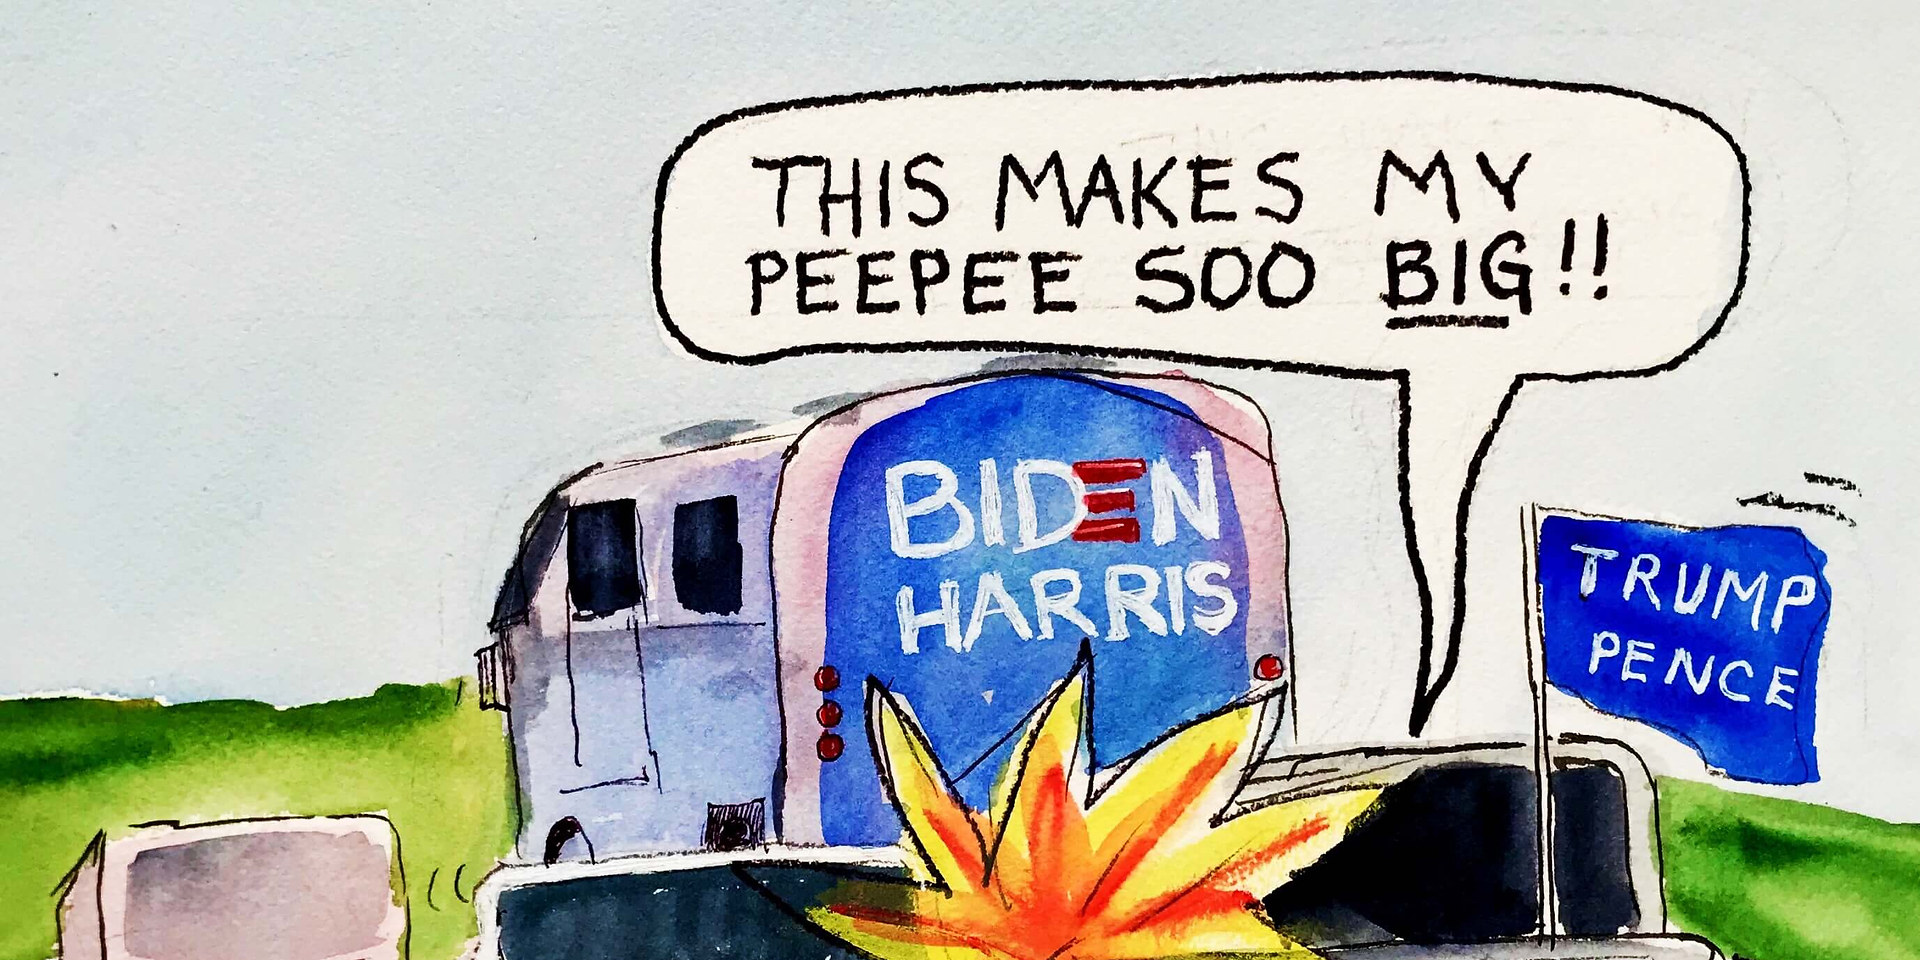 Biden-Harris campaign bus swarmed by assholes in Texas, causing a dangerous situation. But it also involved tiny erections, so that's cool.